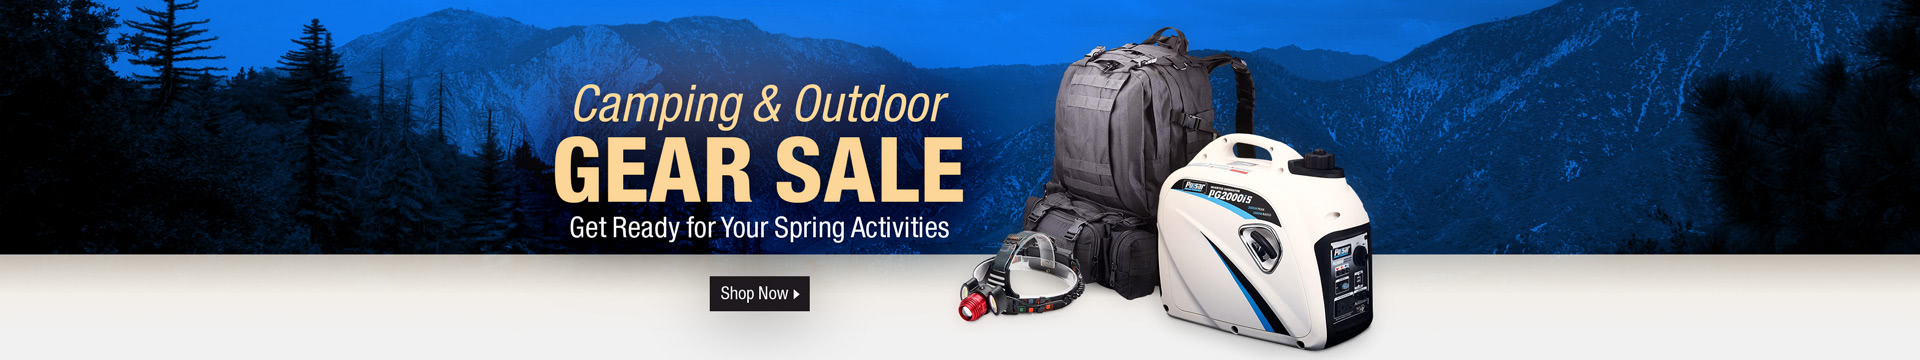 Camping & Outdoor Gear Sale